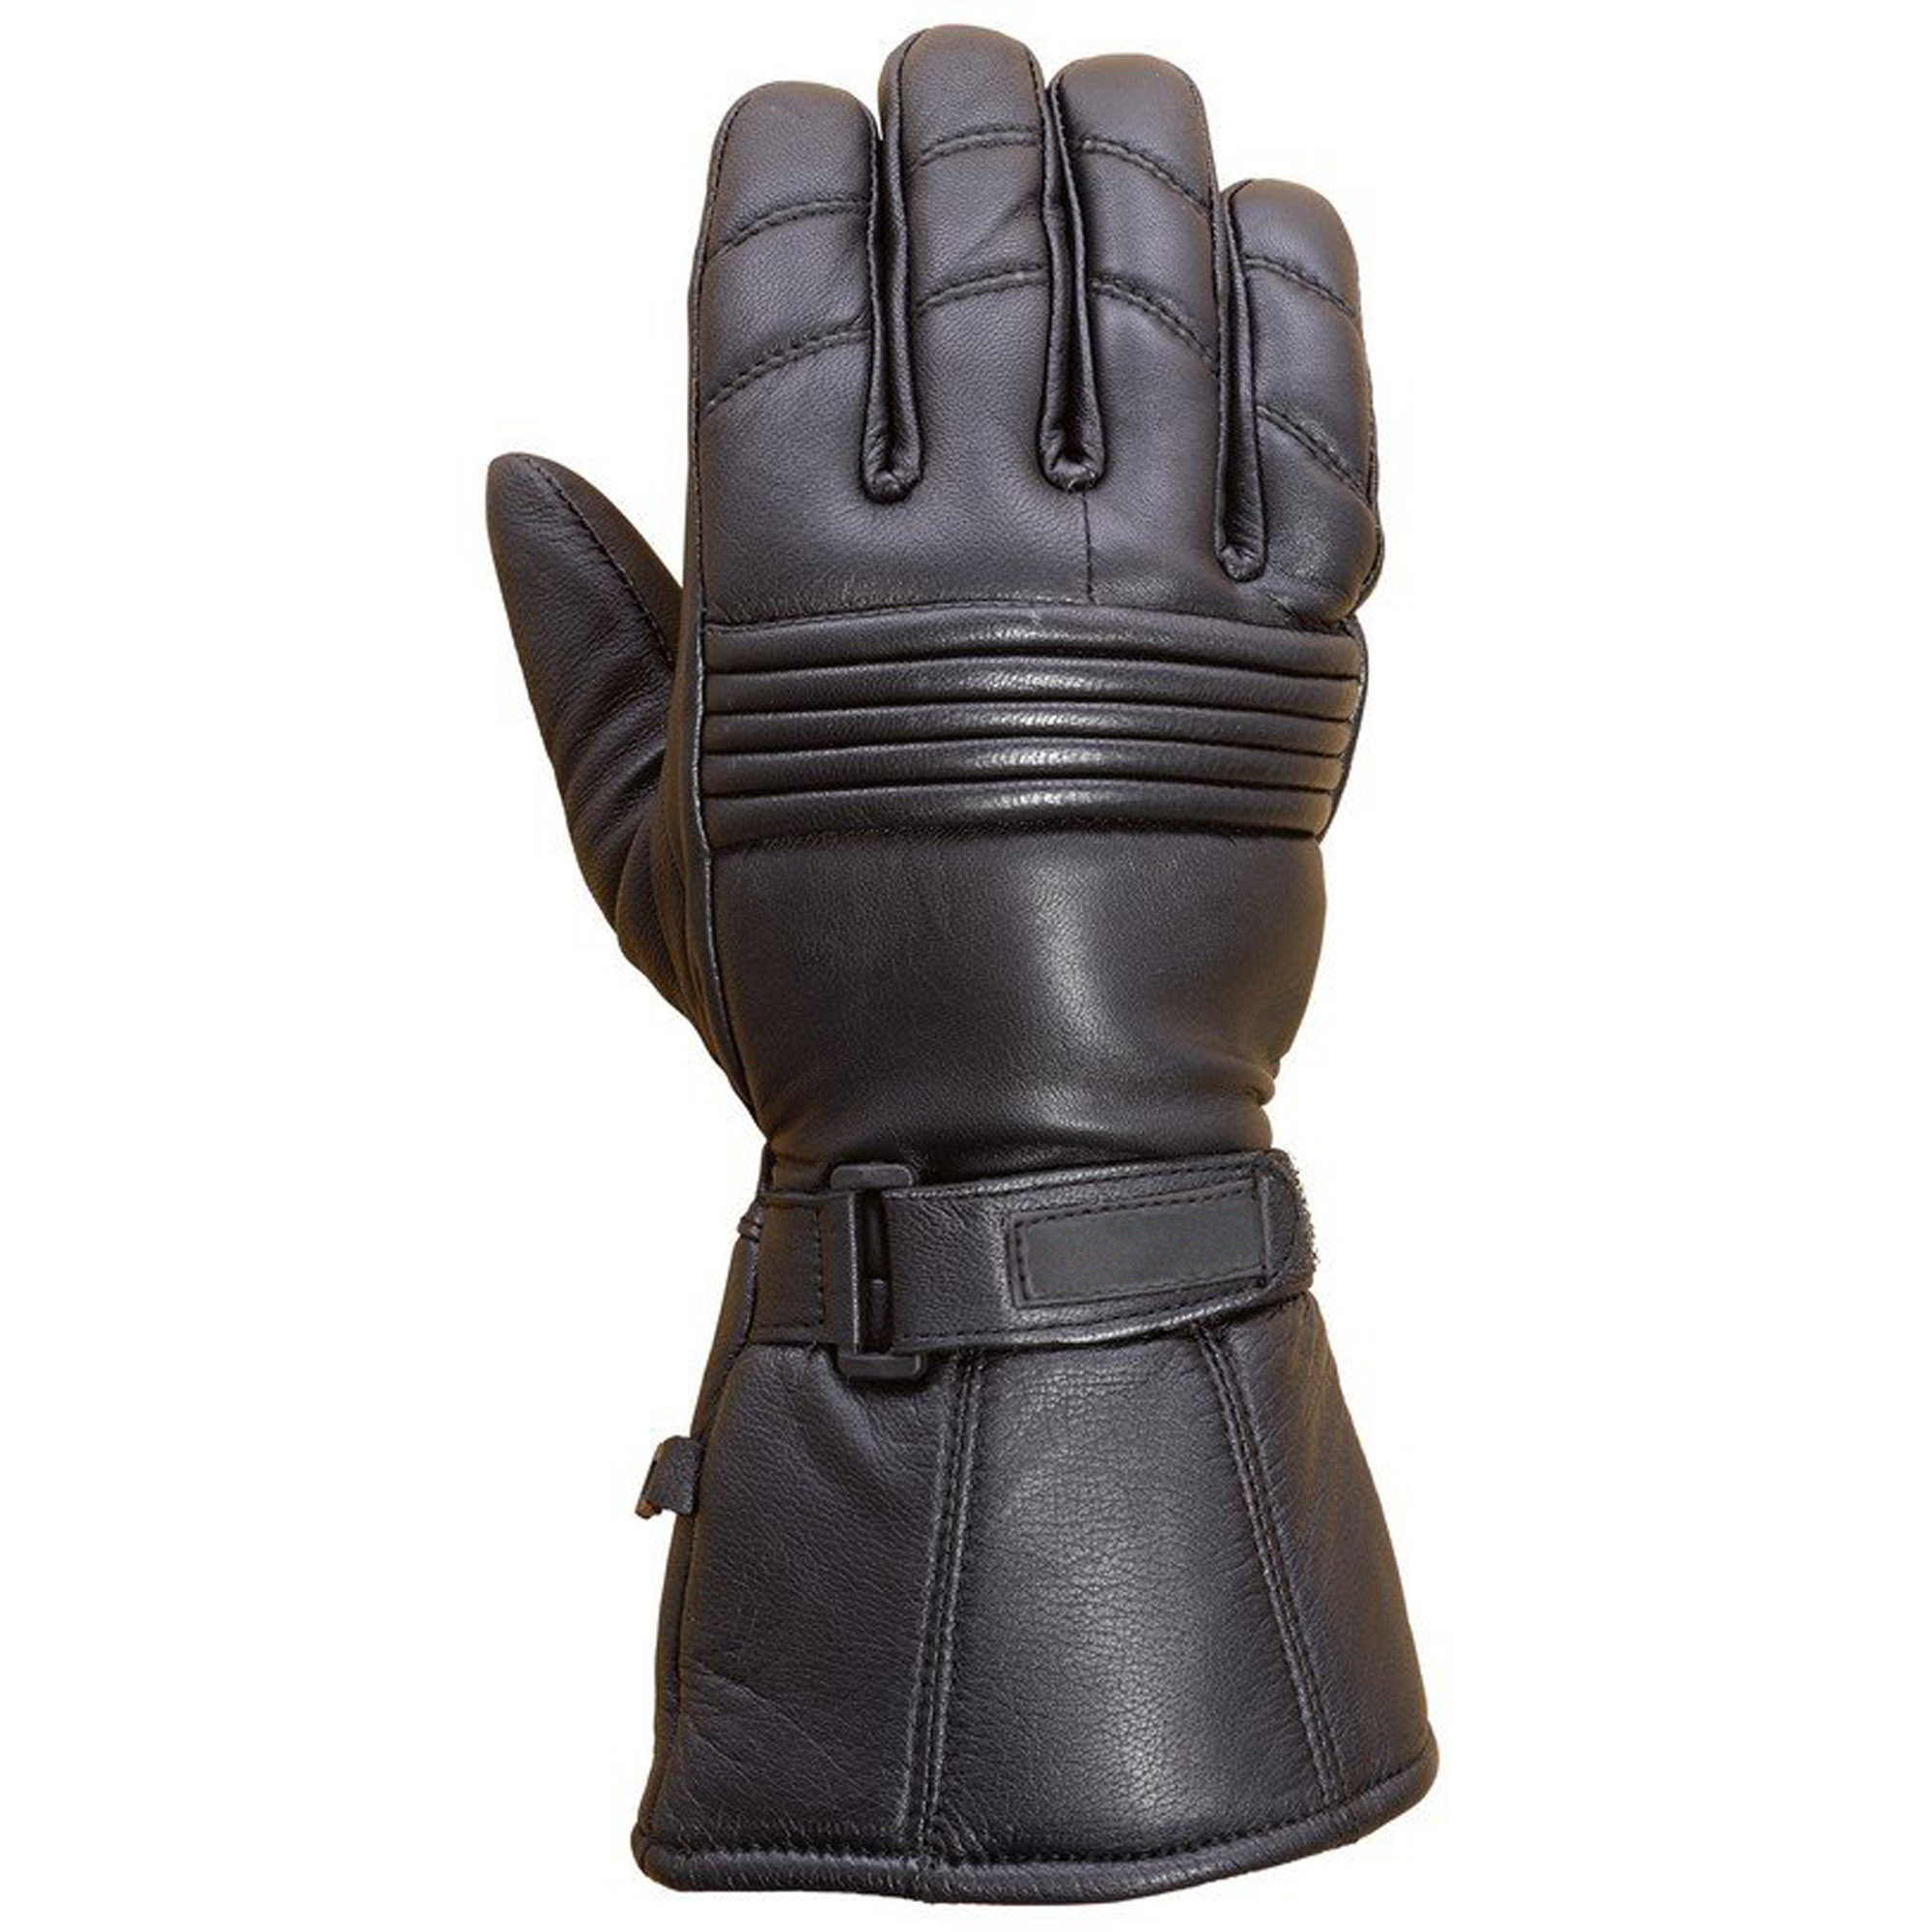 Premium Leather Long Gauntlet Motorcycle Biker Riding Winter Gloves Black G12 (S)